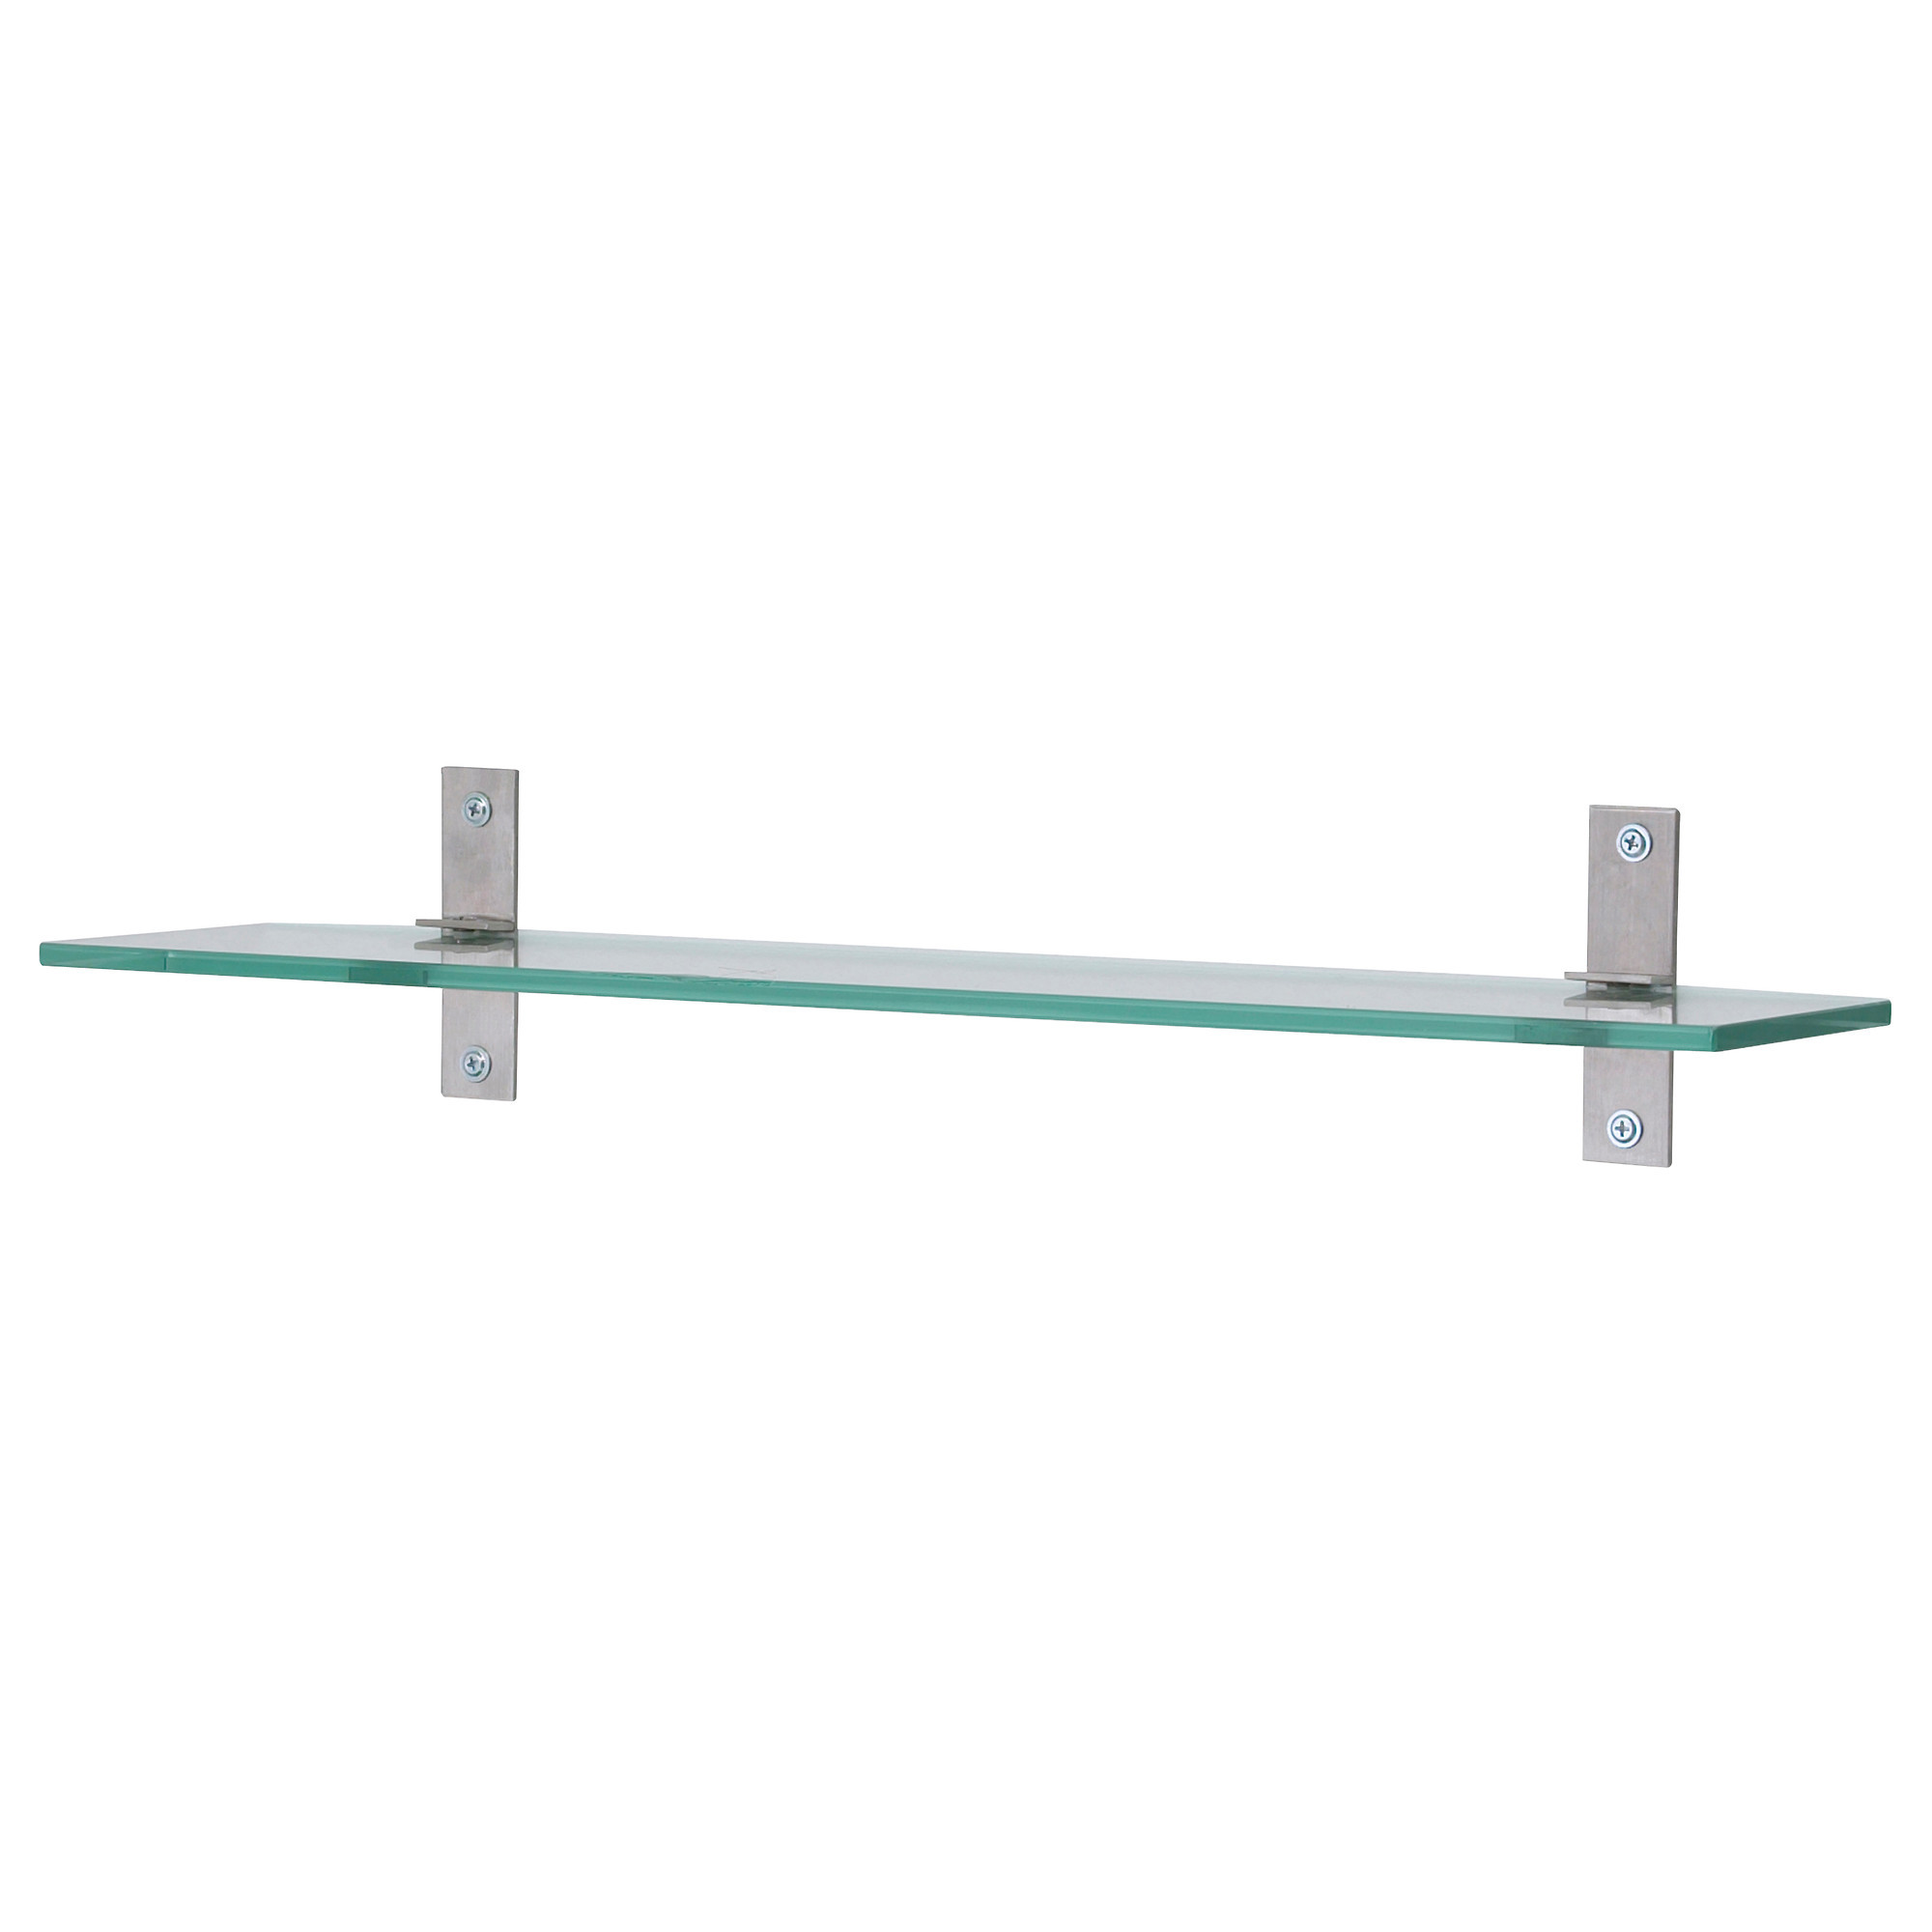 glass floating shelves ikea designs shelf brackets pins wall design best collection mounted with drawer shelving strong material large long thin transparance stayed furniture